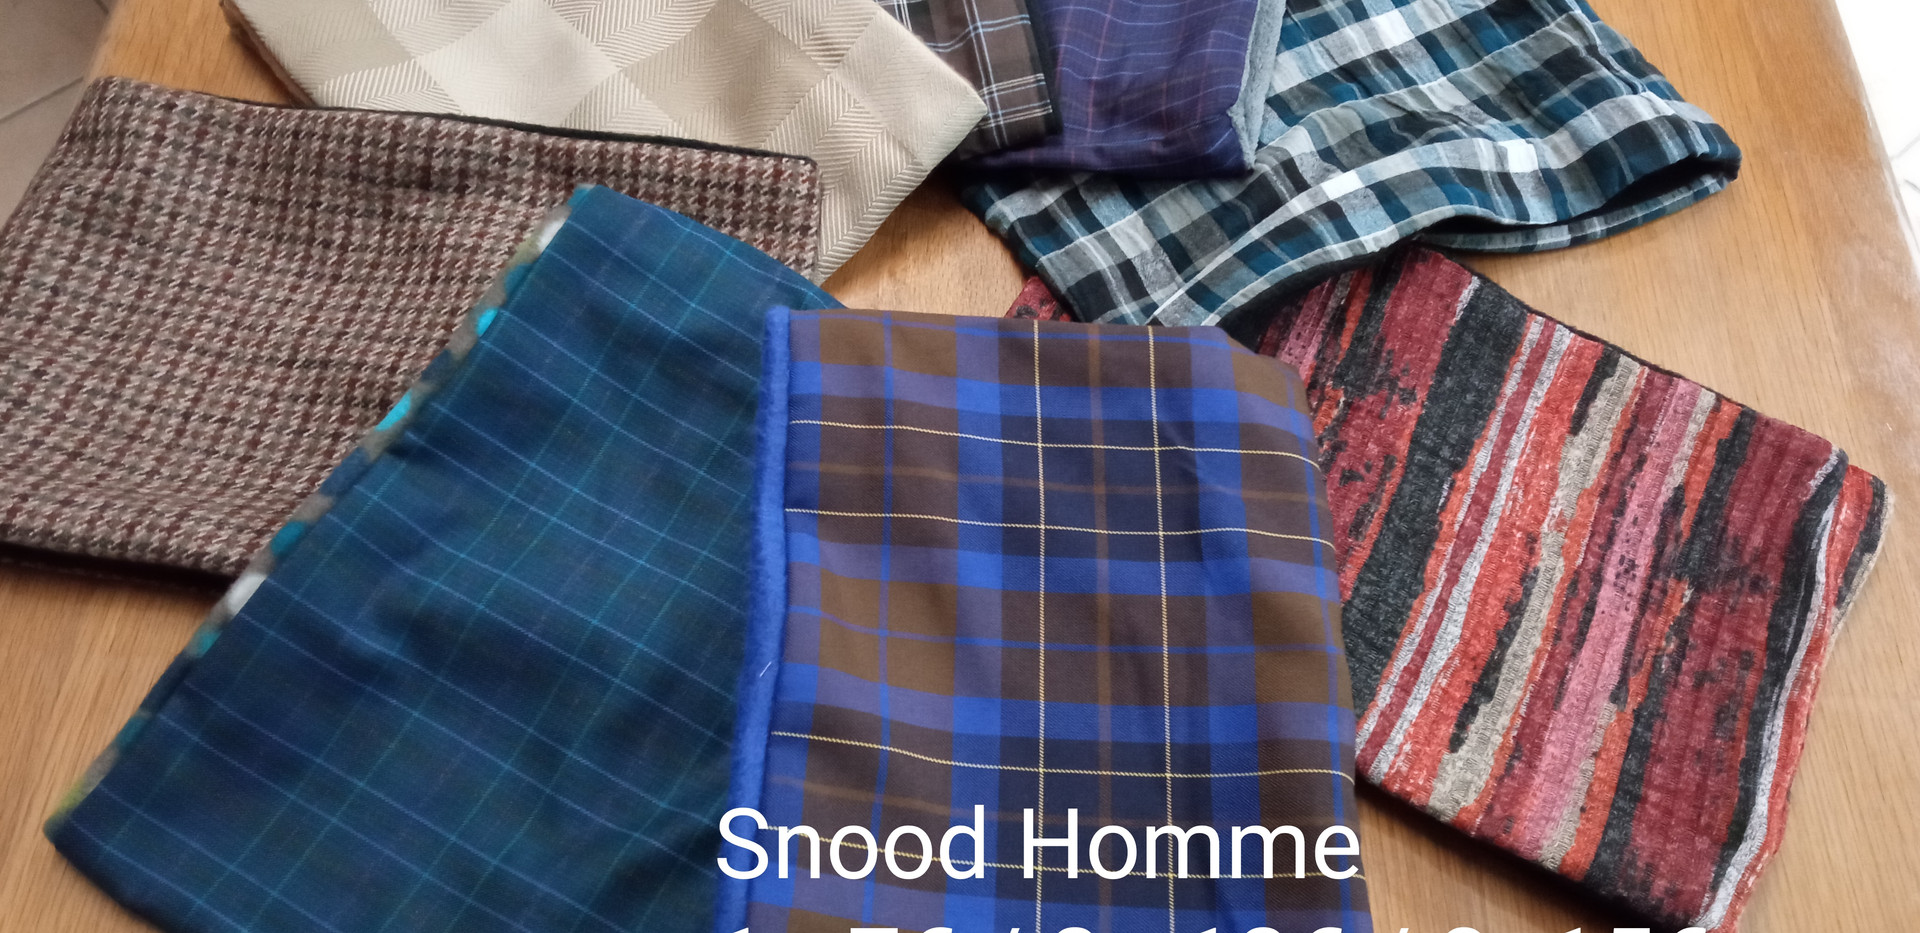 Snood homme